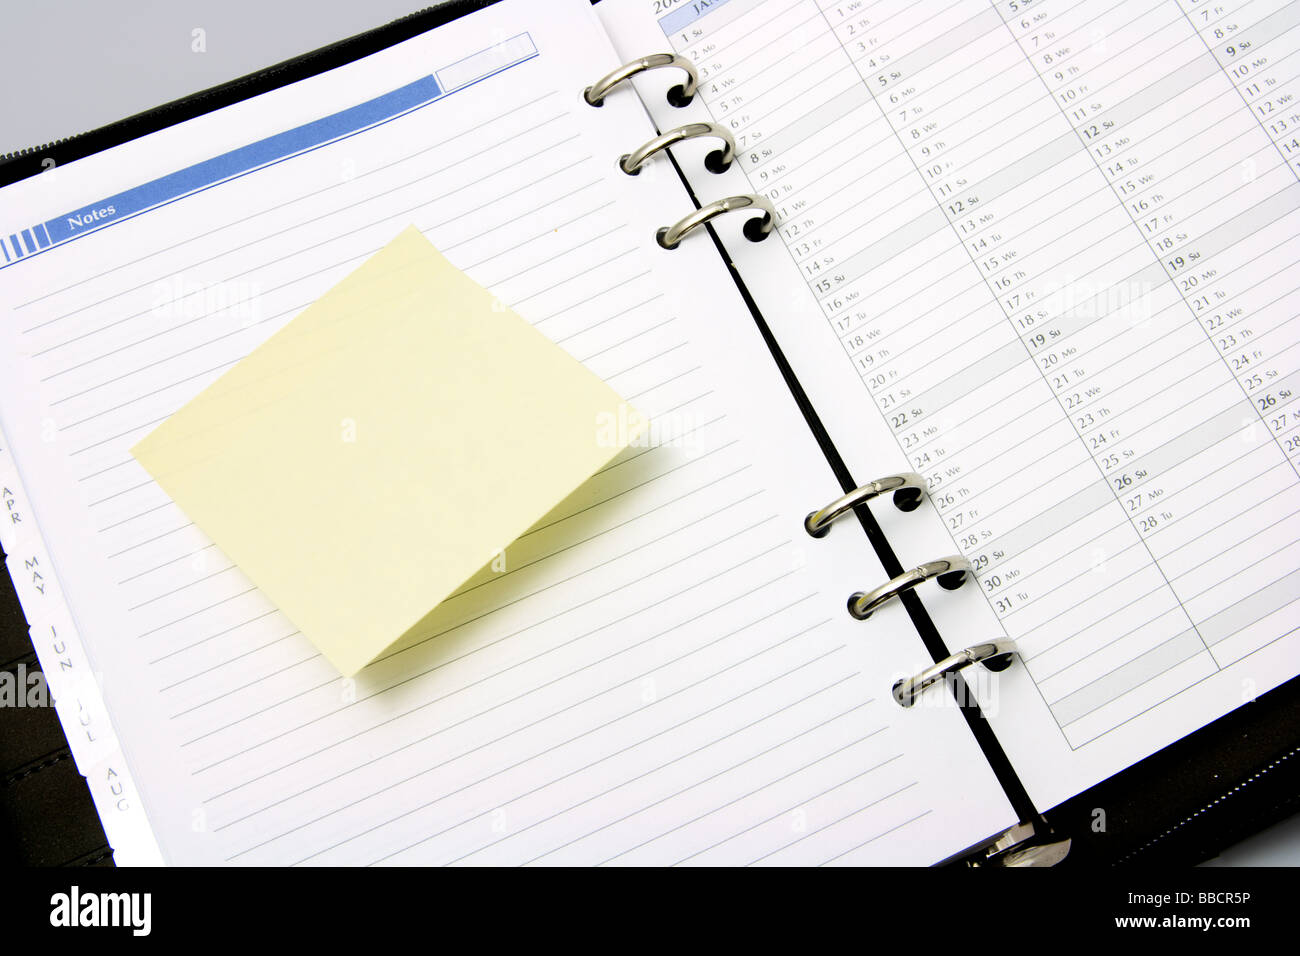 Post It Note on Pocket Organizer - Stock Image